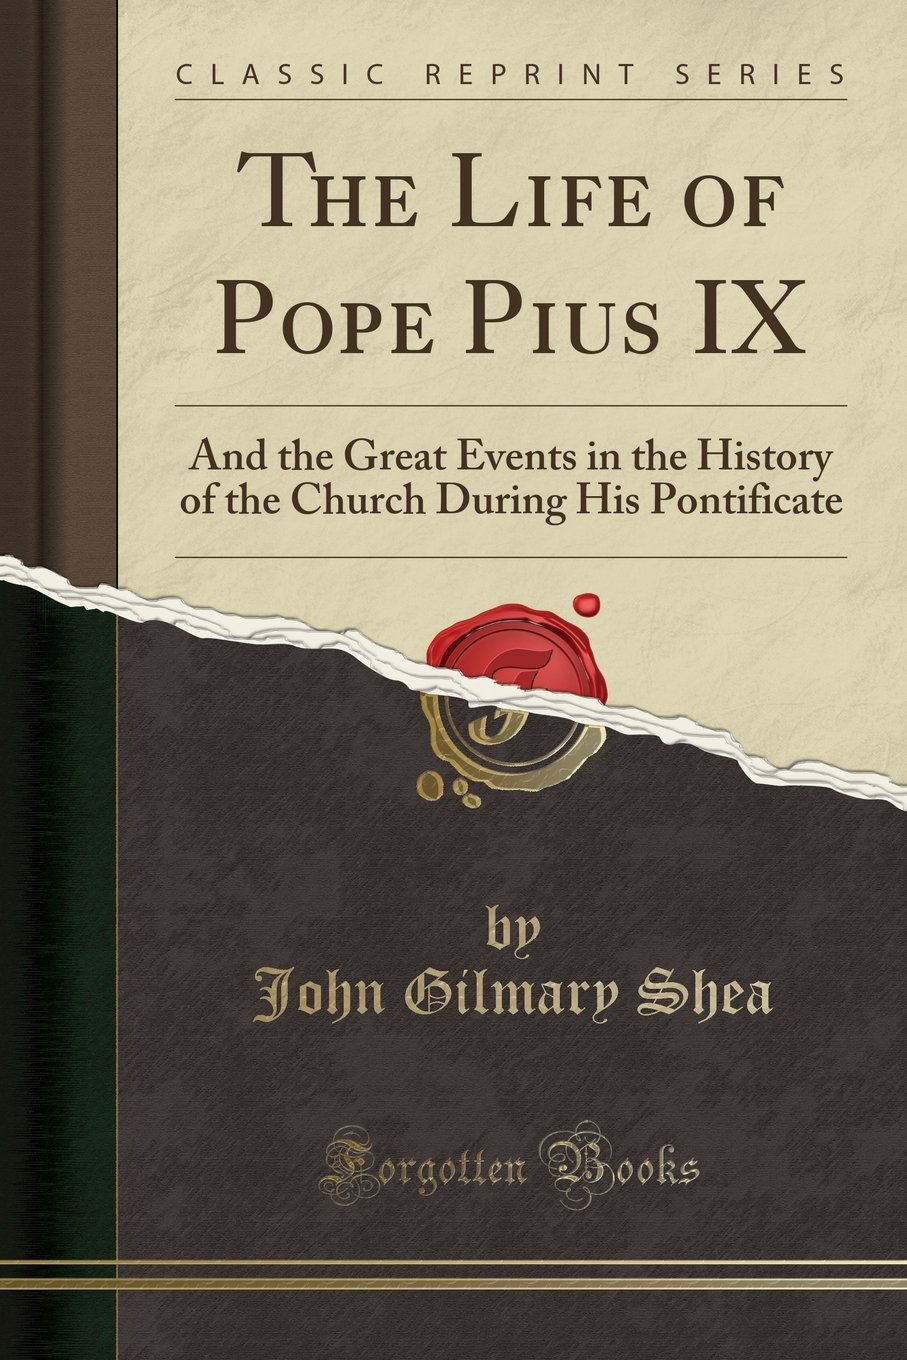 The Life of Pope Pius IX: And the Great Events in the History of the Church During His Pontificate (Classic Reprint) PDF